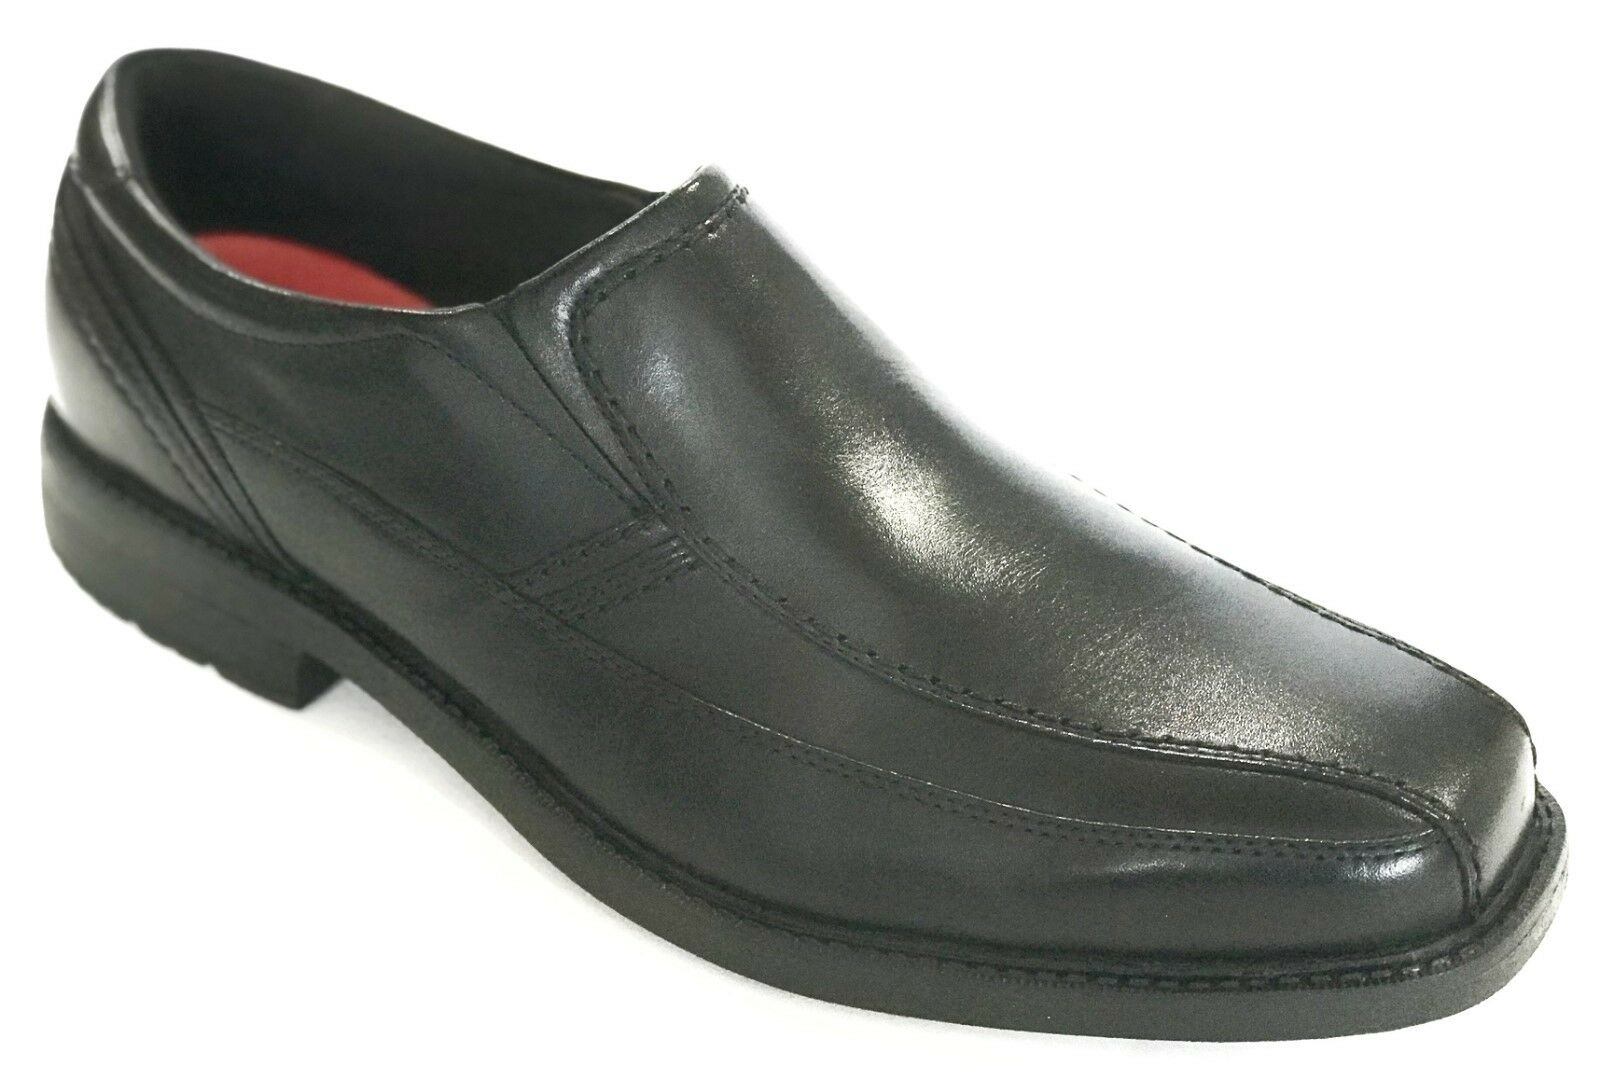 Rockport Mens Real Capital Slip On Loafers Dress shoes Black Leather 12 NEW